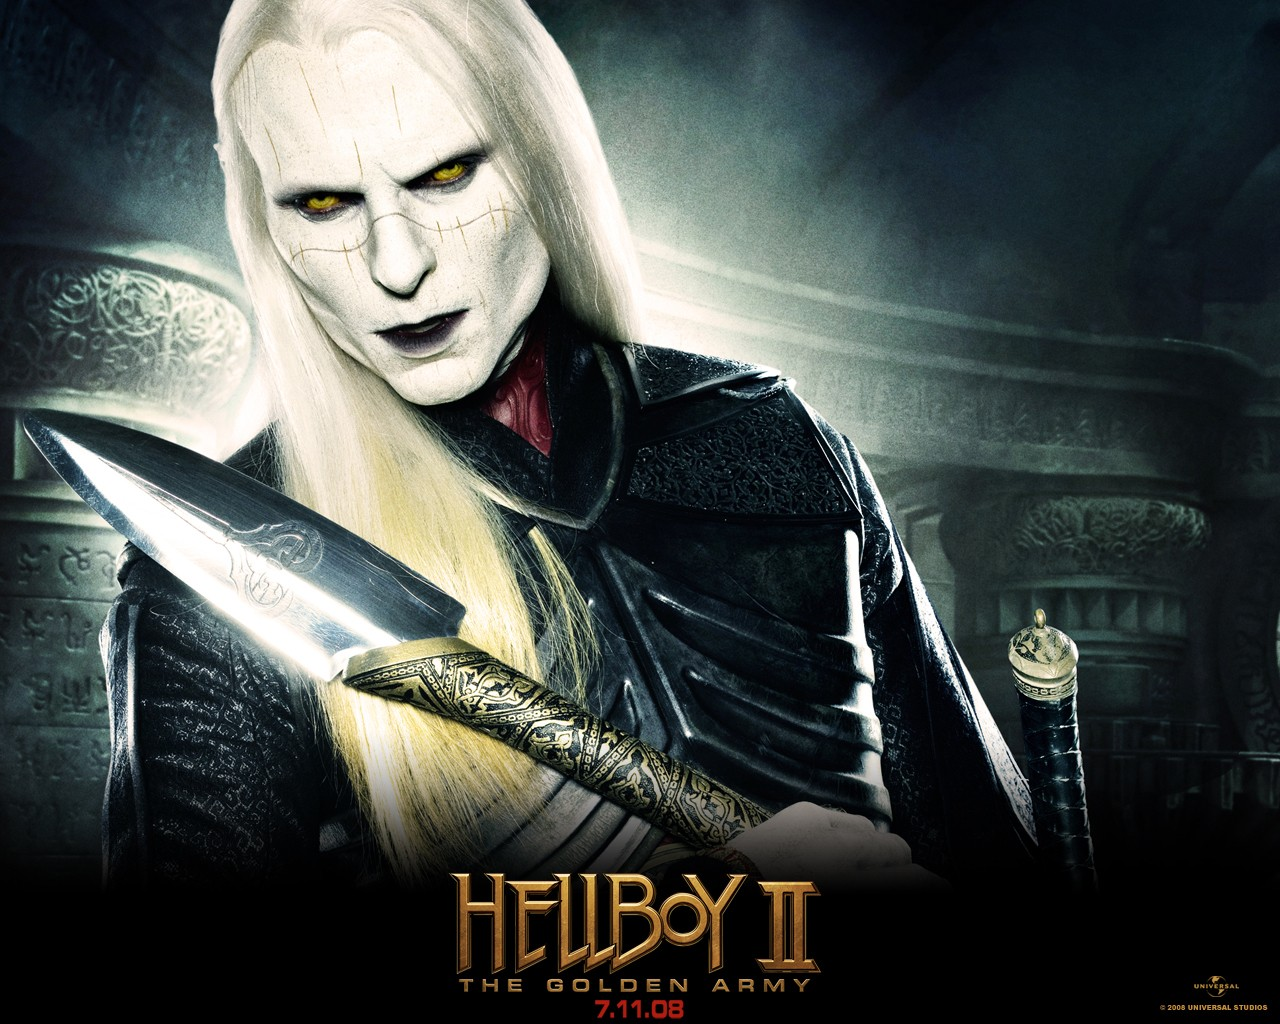 Un wallpaper di Luke Goss nel film 'Hellboy II - The Golden Army'